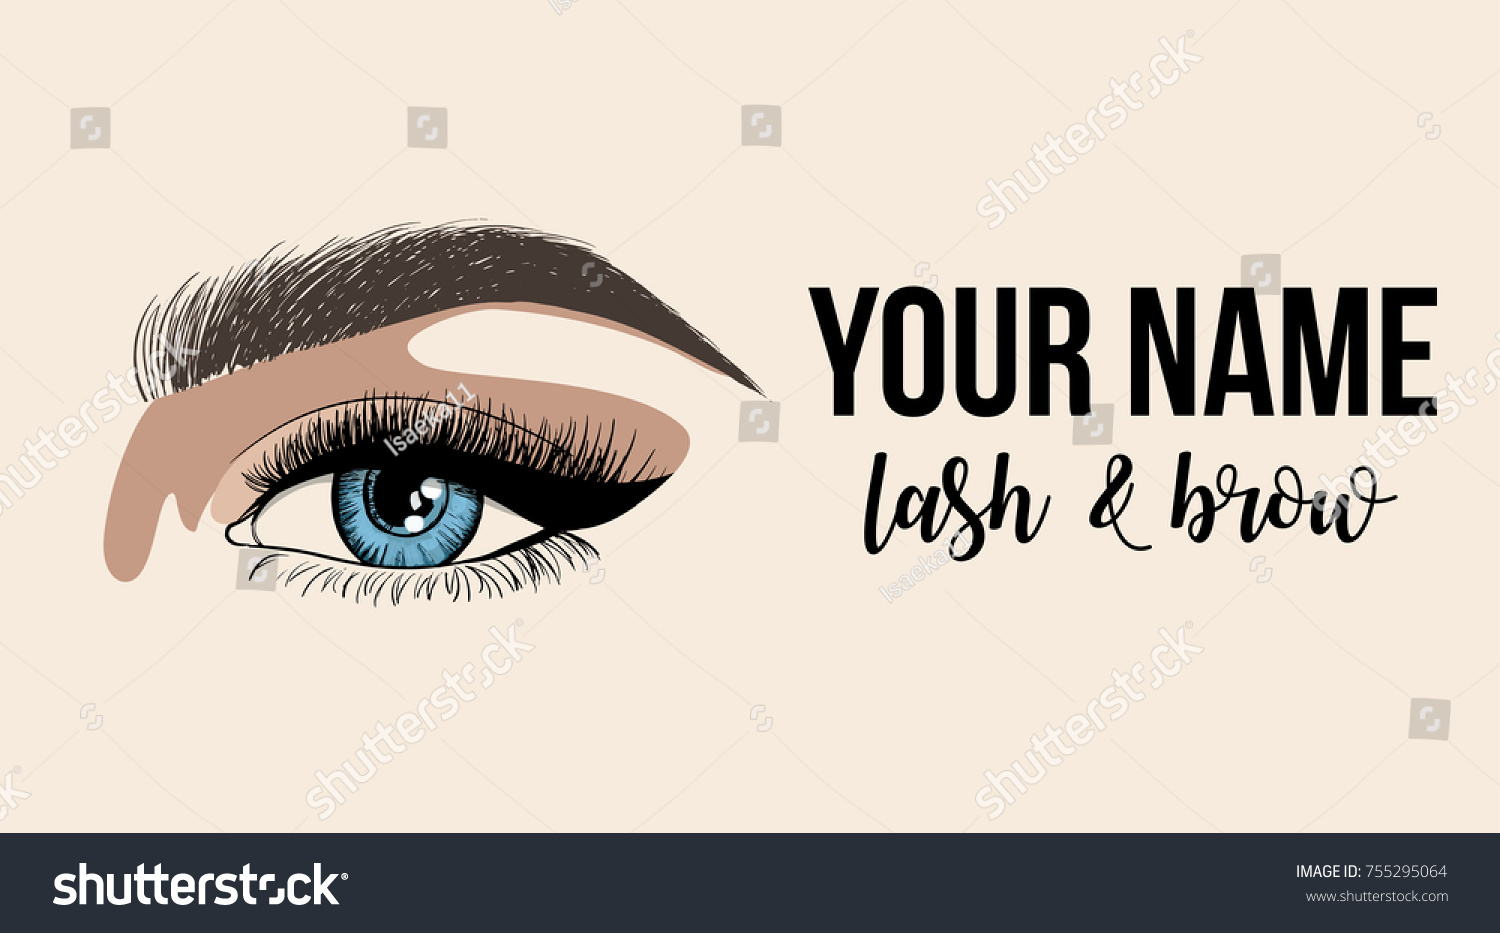 Lash Brow Business Card Logo Template Stock Vector Royalty Free Eyebrow Or With Woman Eye